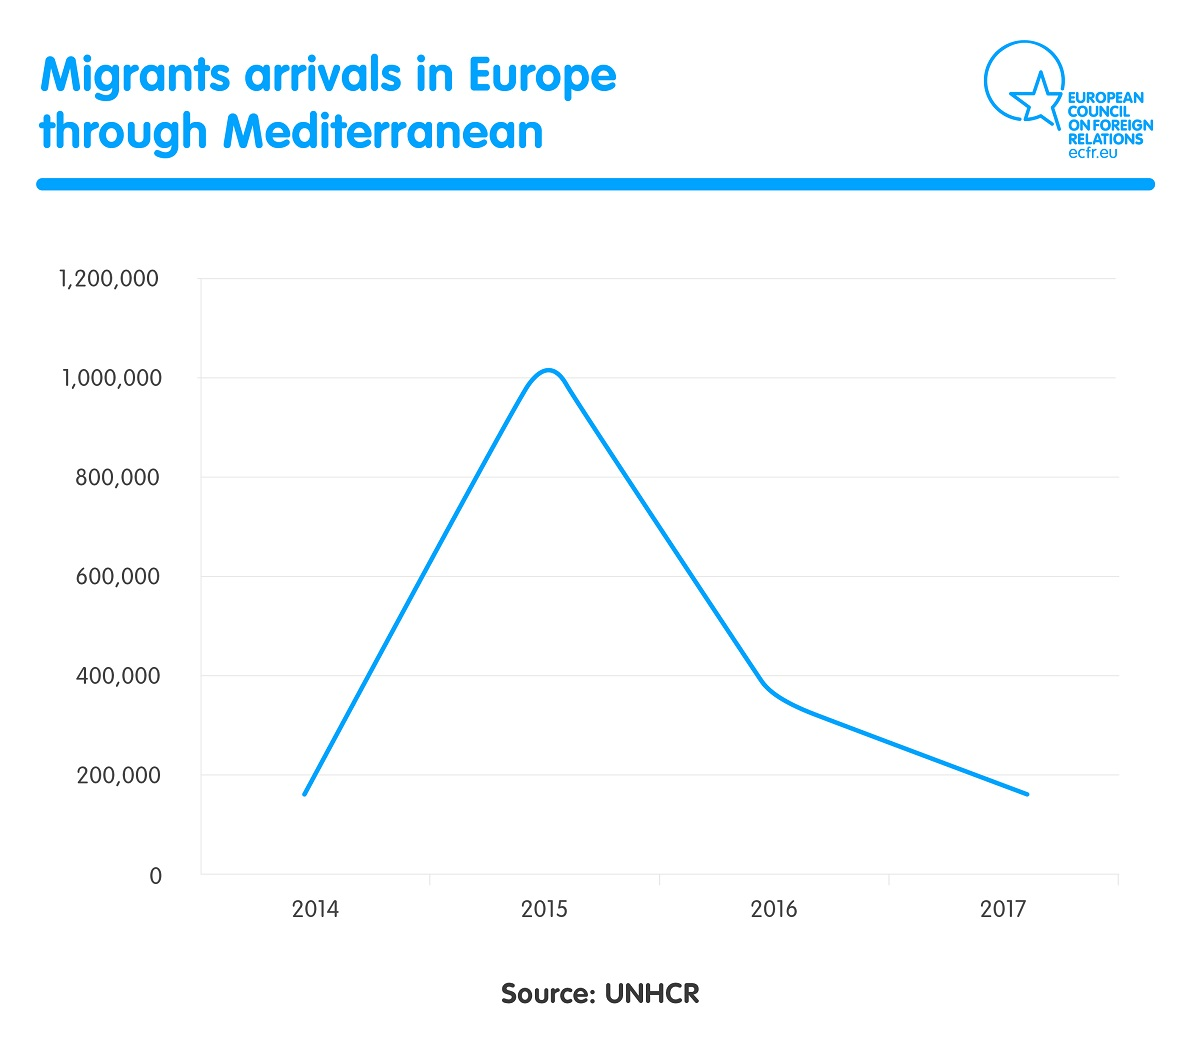 migrants arrivals in Europe